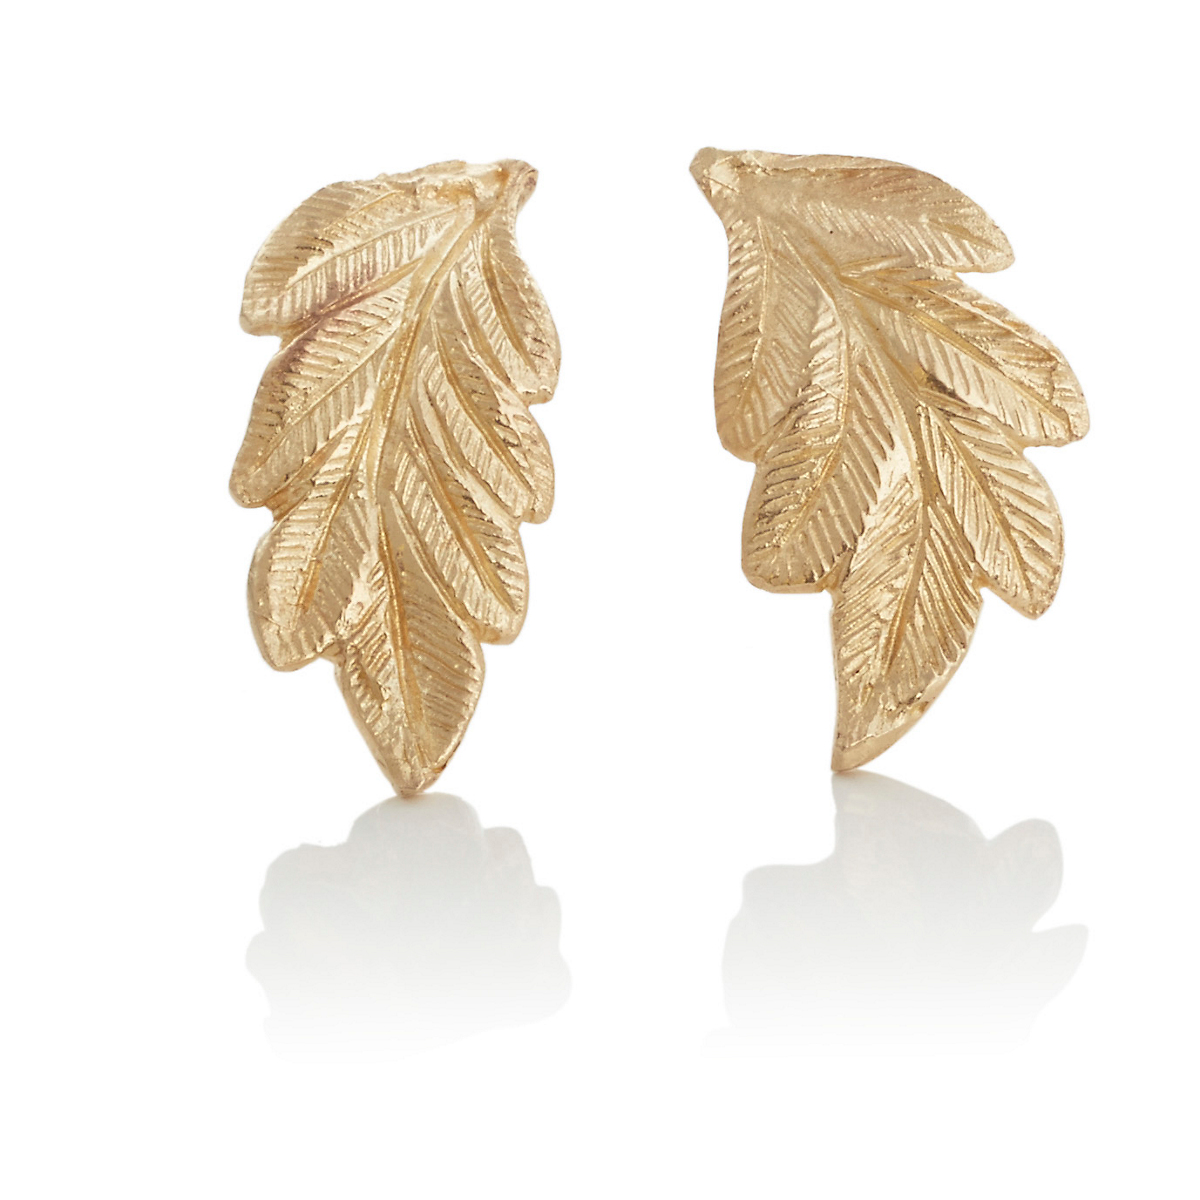 Ashley Morgan Hand-Engraved Gold Leaf Earrings